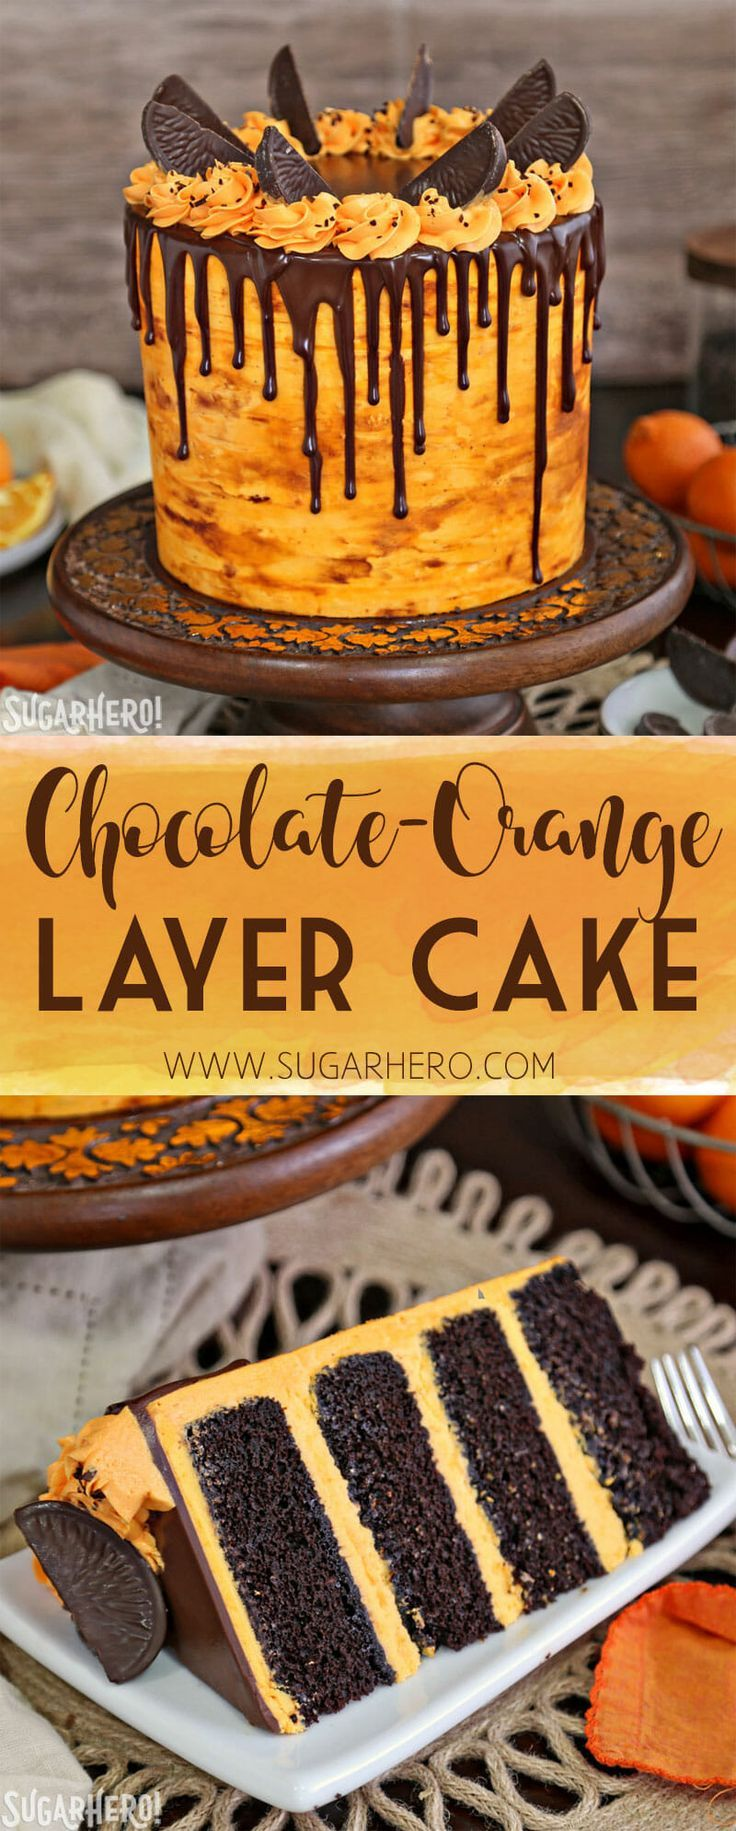 Chocolate-Orange Cake - If you love chocolate-orange flavors, this cake is for you! It's a delicious chocolate cake filled with tangy orange buttercream and topped with chocolate oranges. | From SugarHero.com   #chocolate #orange #layercake #chocolatecake #chocolateorange #birthdaycake